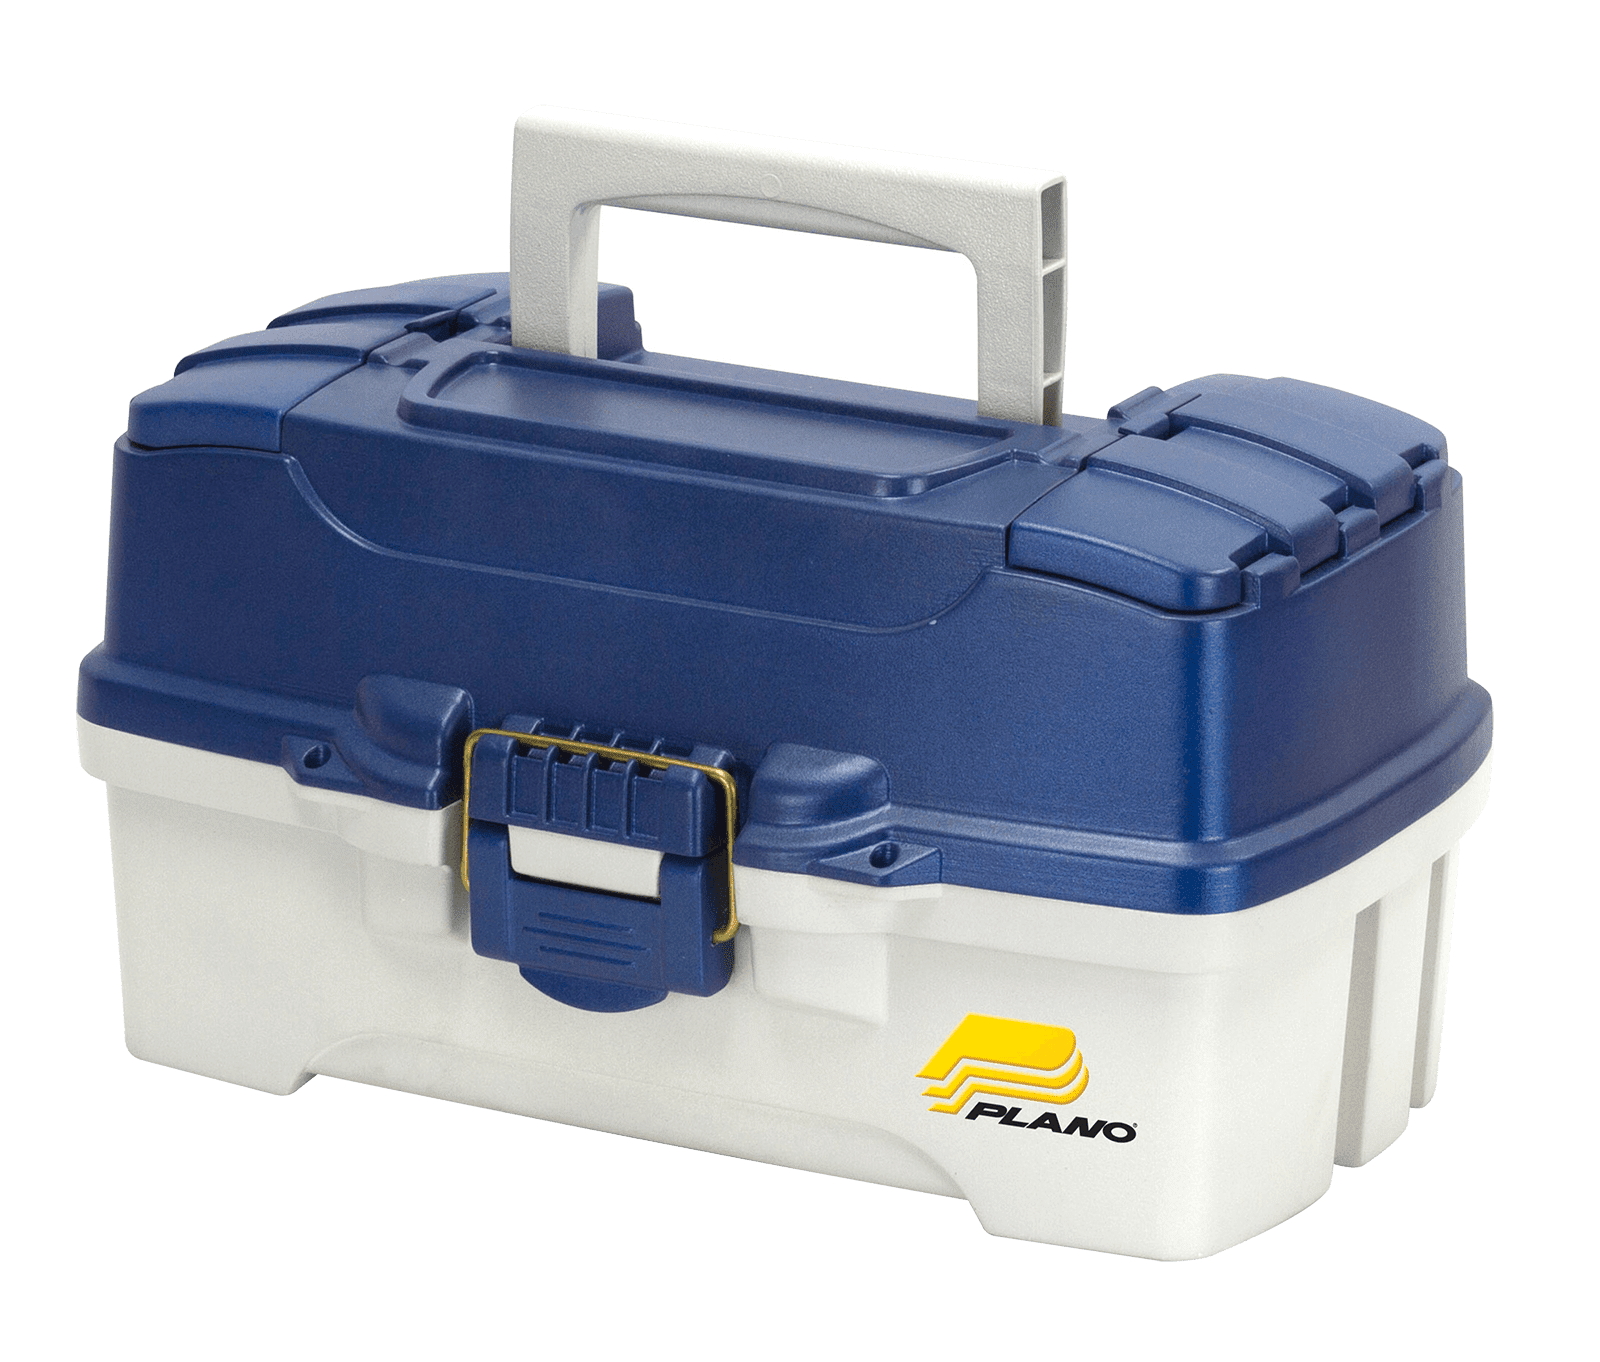 Plano Fishing Two Tray Tackle Box, Dual Top Access, Blue Metallic Off White by Plano